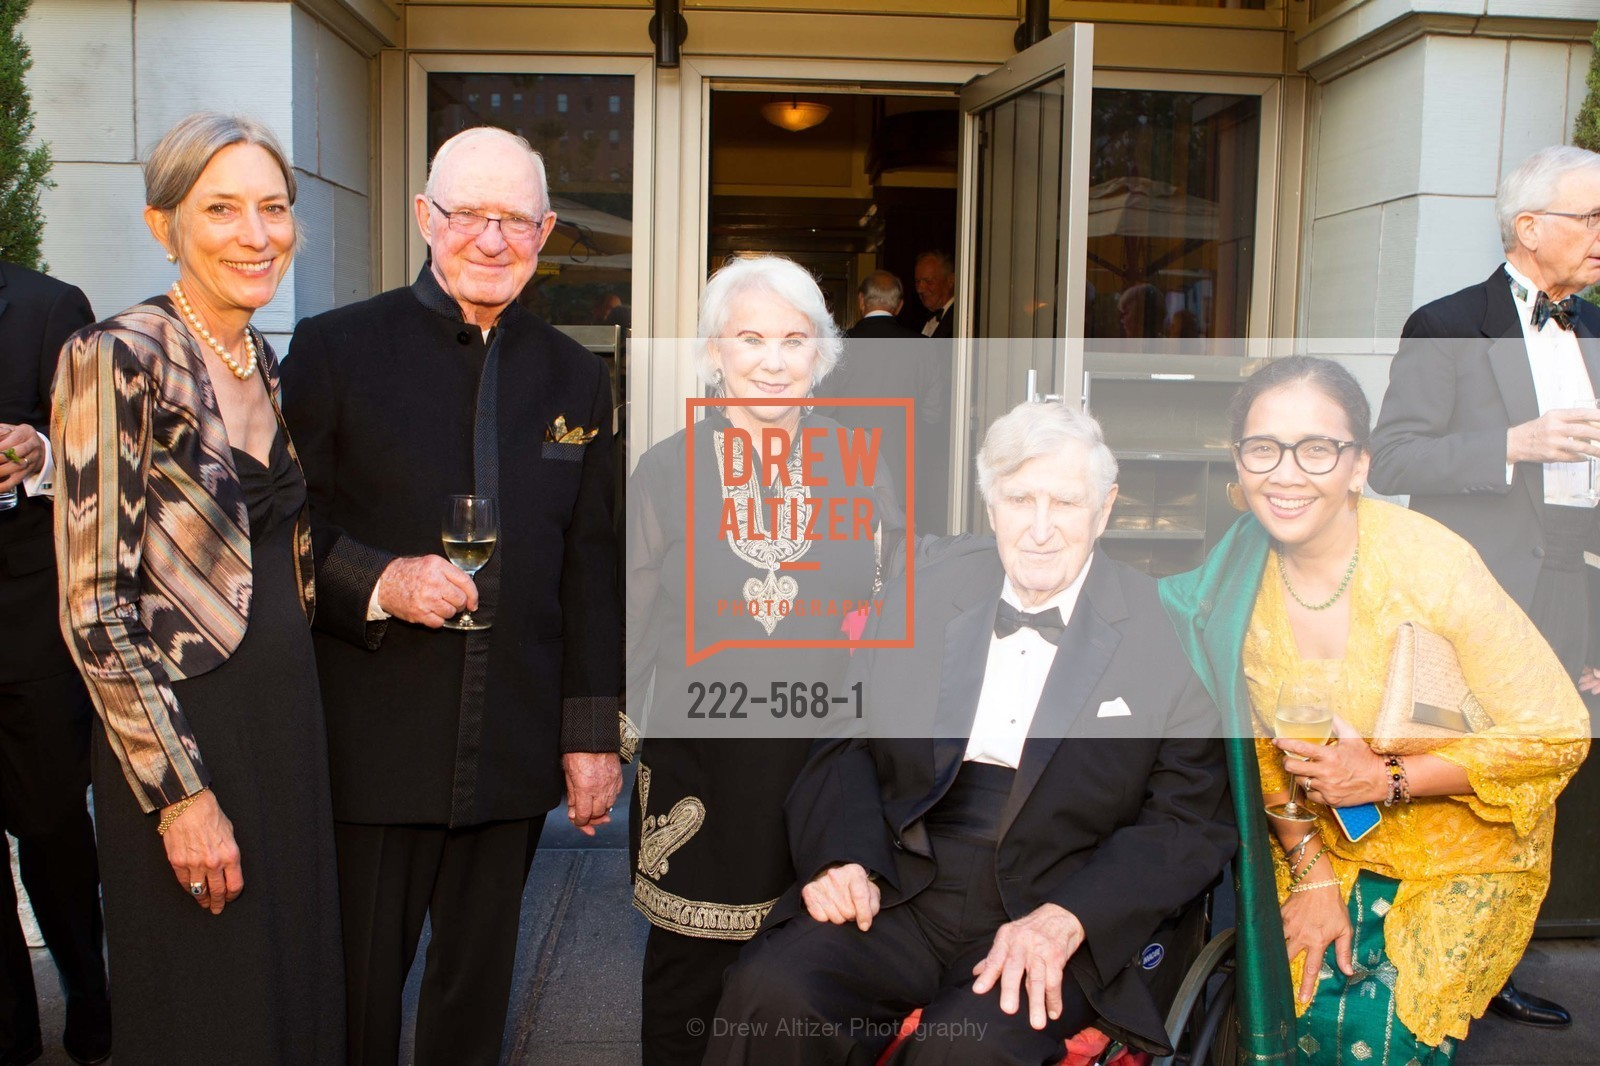 Suzanne Siskel, Paul Slawson, Mary Slawson, Hayden Williams, Sandra Hamid, SOTHEBY'S  Hosts a Private Viewing of Highlights from the Collection of MRS. PAUL MELLON, US, September 17th, 2014,Drew Altizer, Drew Altizer Photography, full-service agency, private events, San Francisco photographer, photographer california